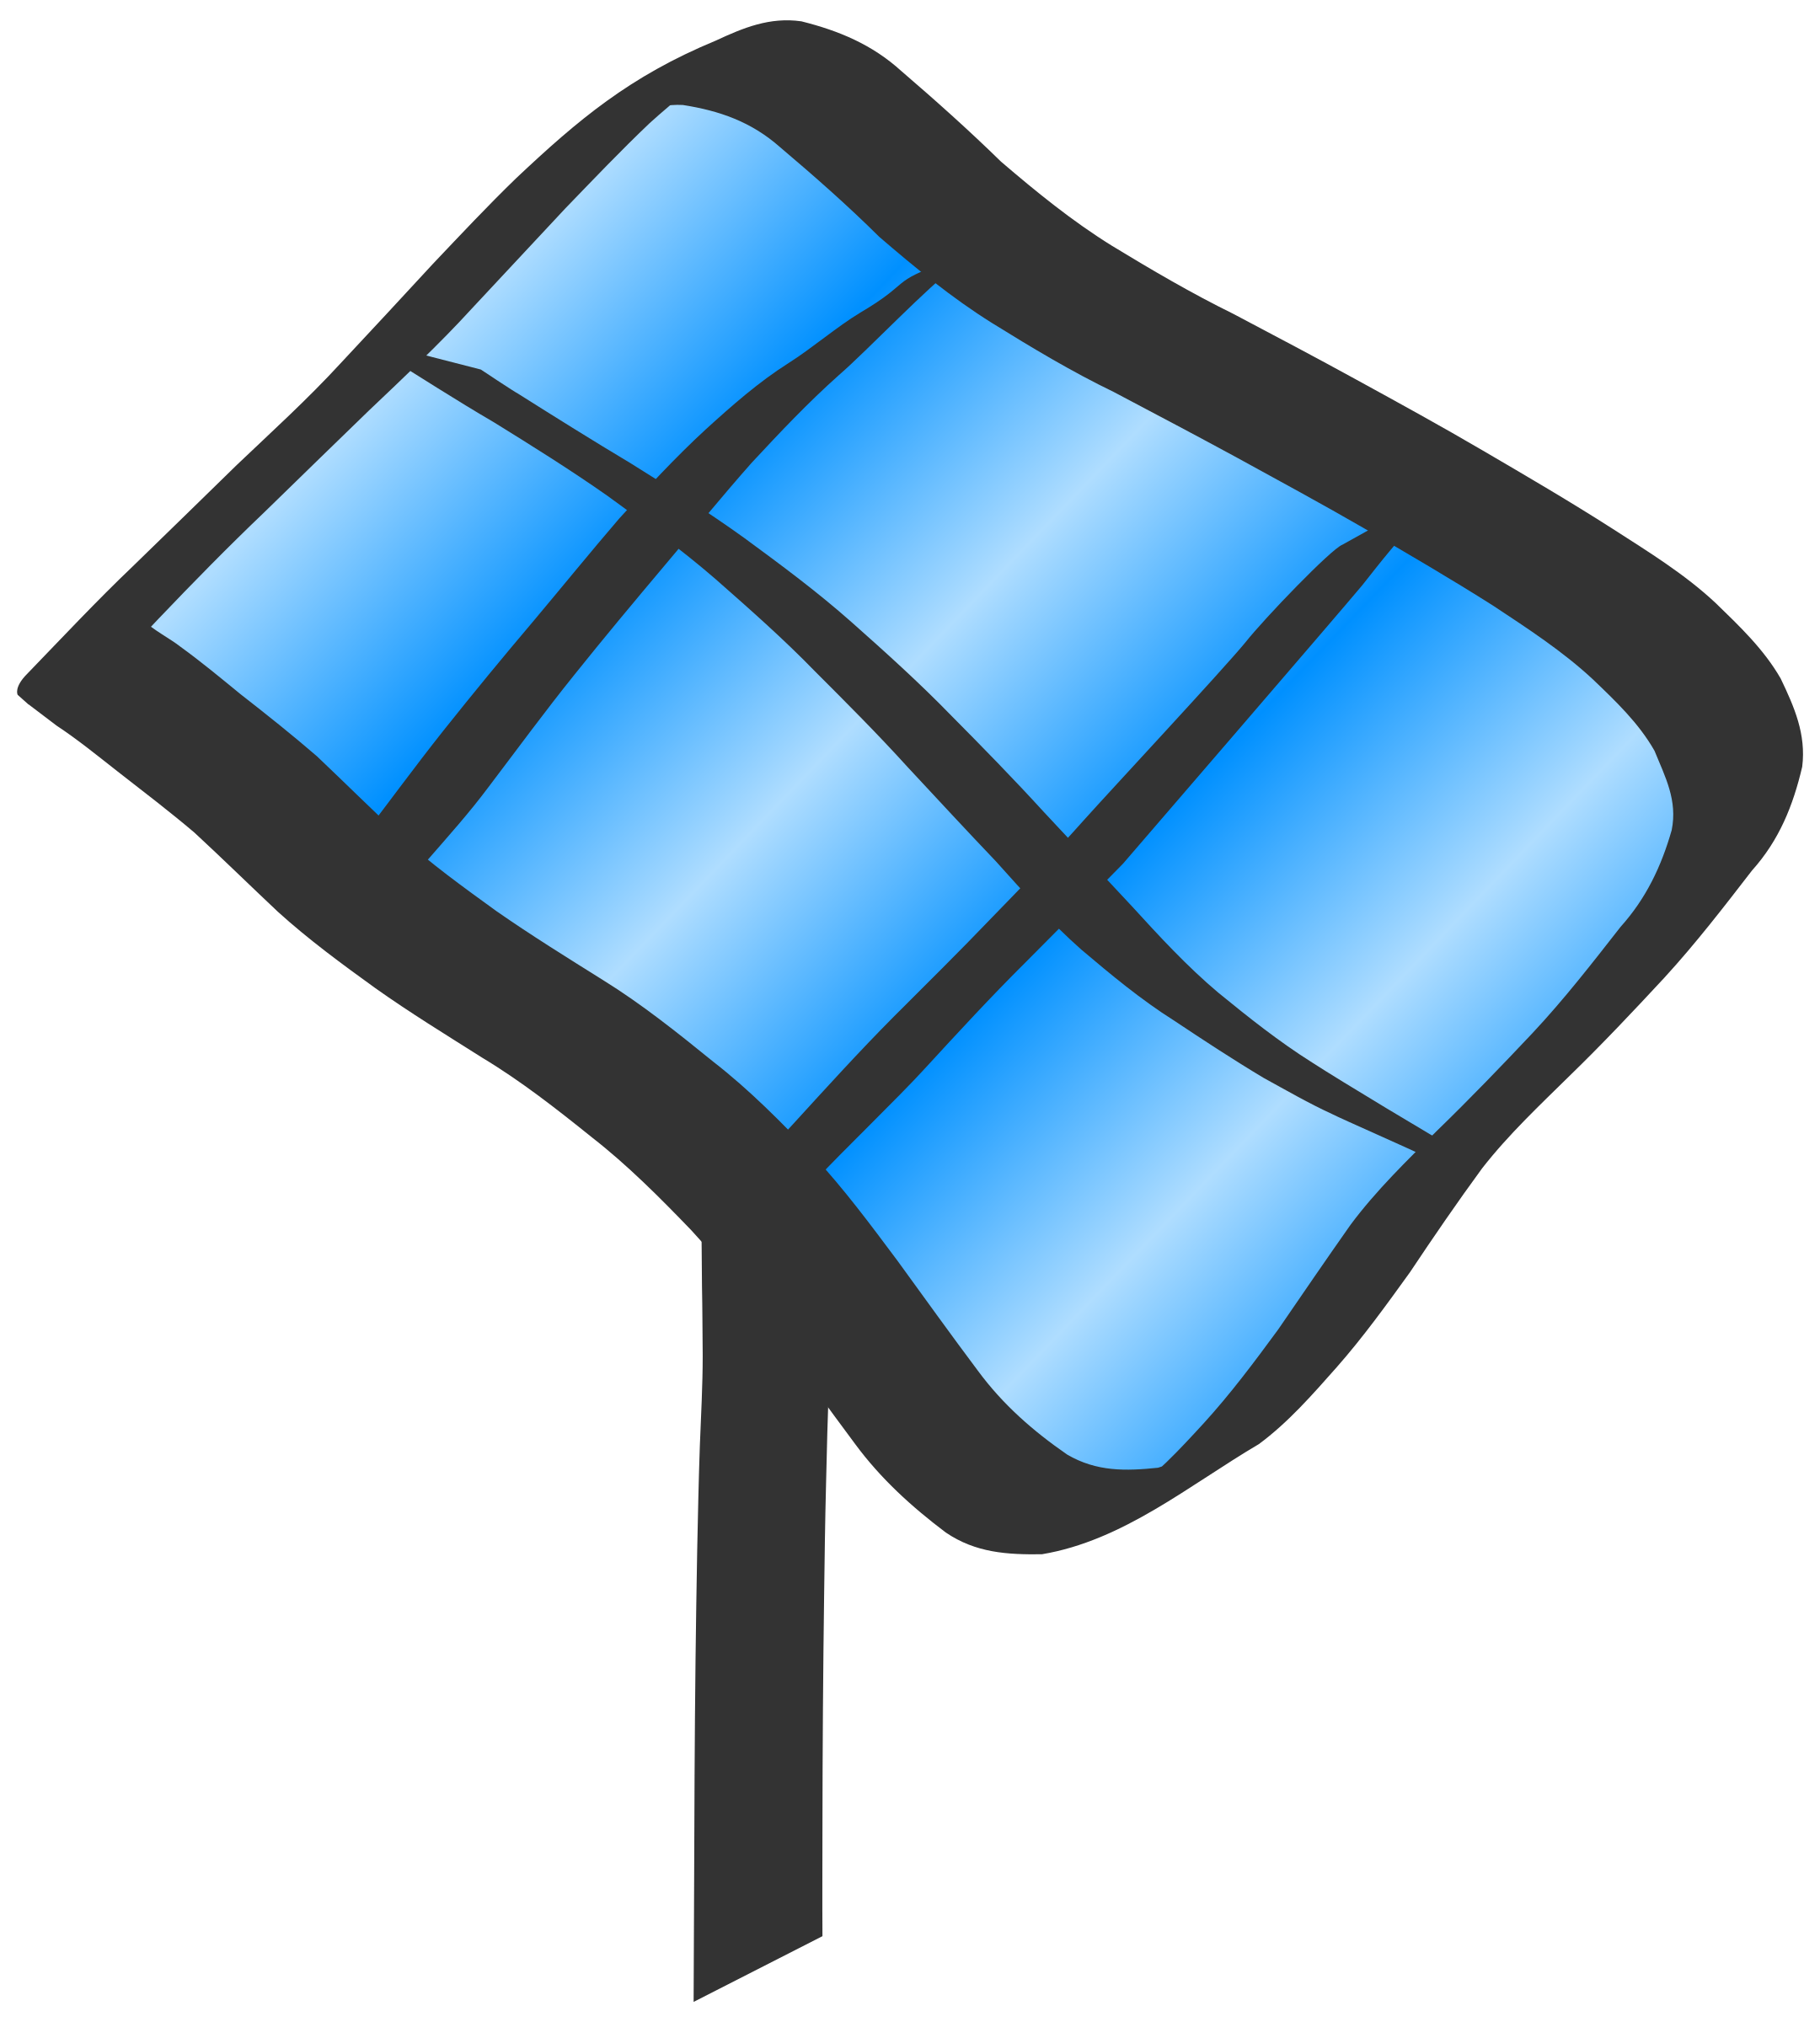 Battery clipart solar battery. Tracker big image png